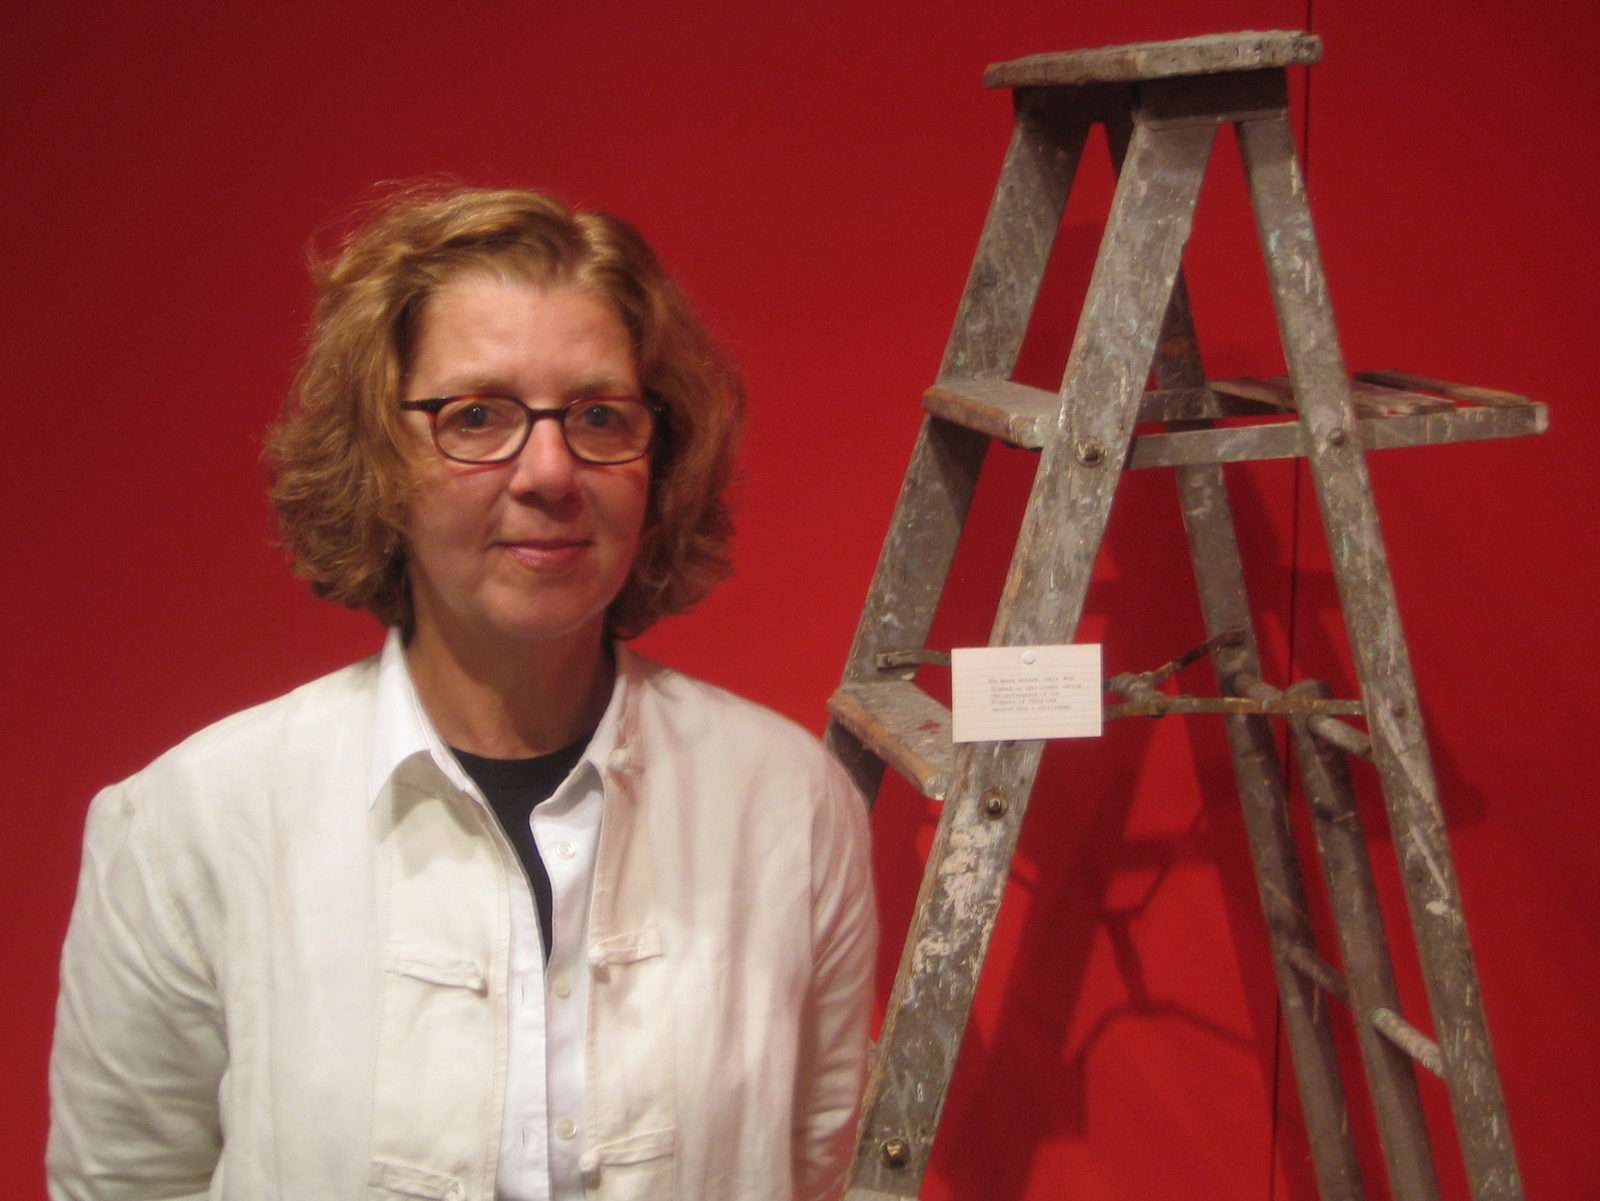 I snapped this photo of Maira in the gallery next to one of her ladders. The woman adores ladders.